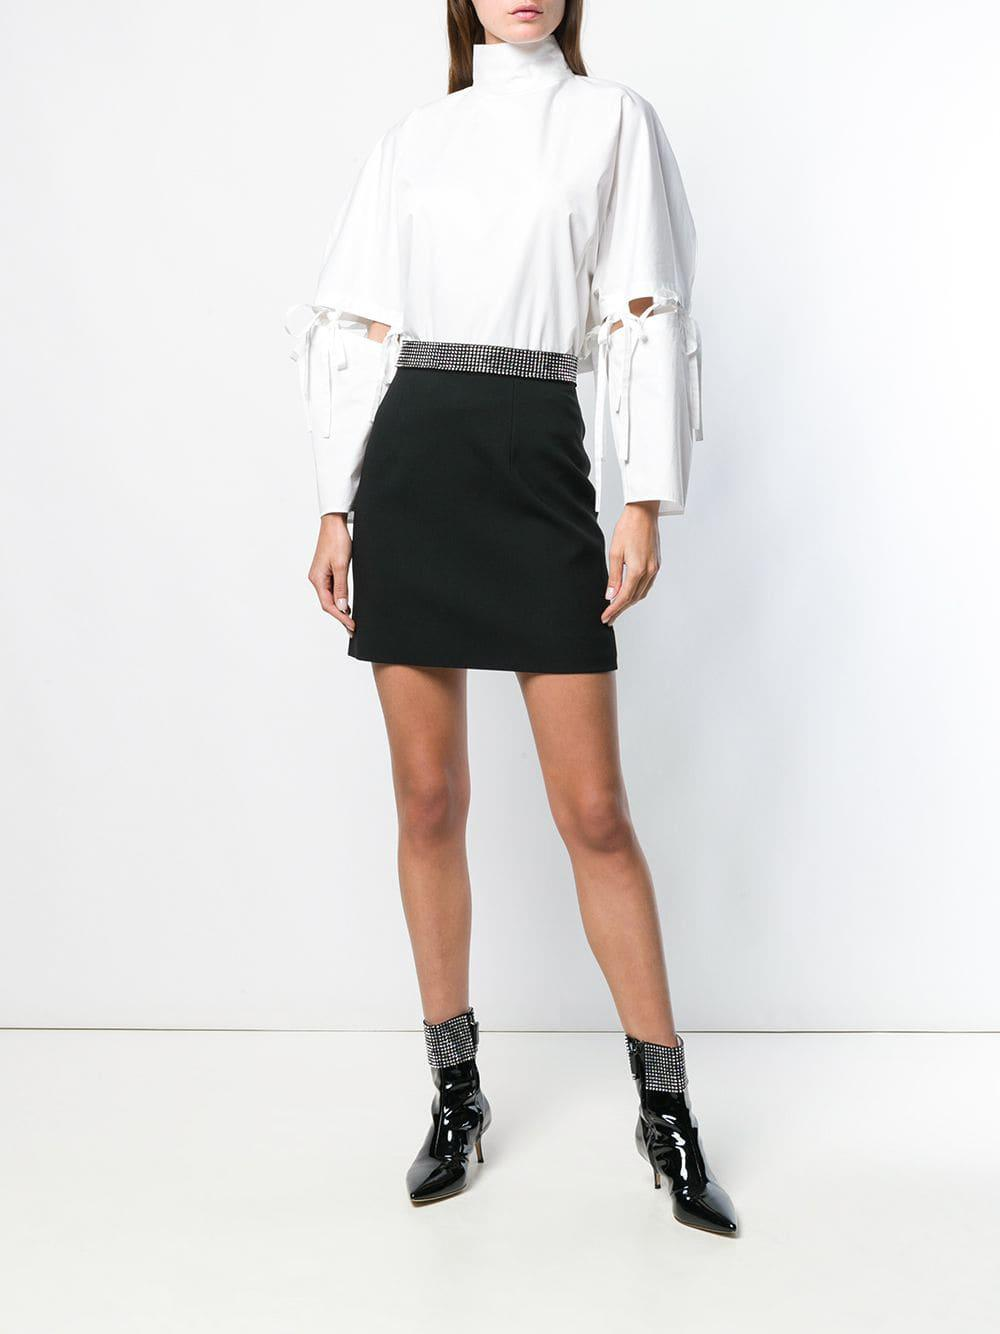 b5b81a5294 Lyst - Christopher Kane Crystal-band Mini Skirt in Black - Save  0.4950495049505008%